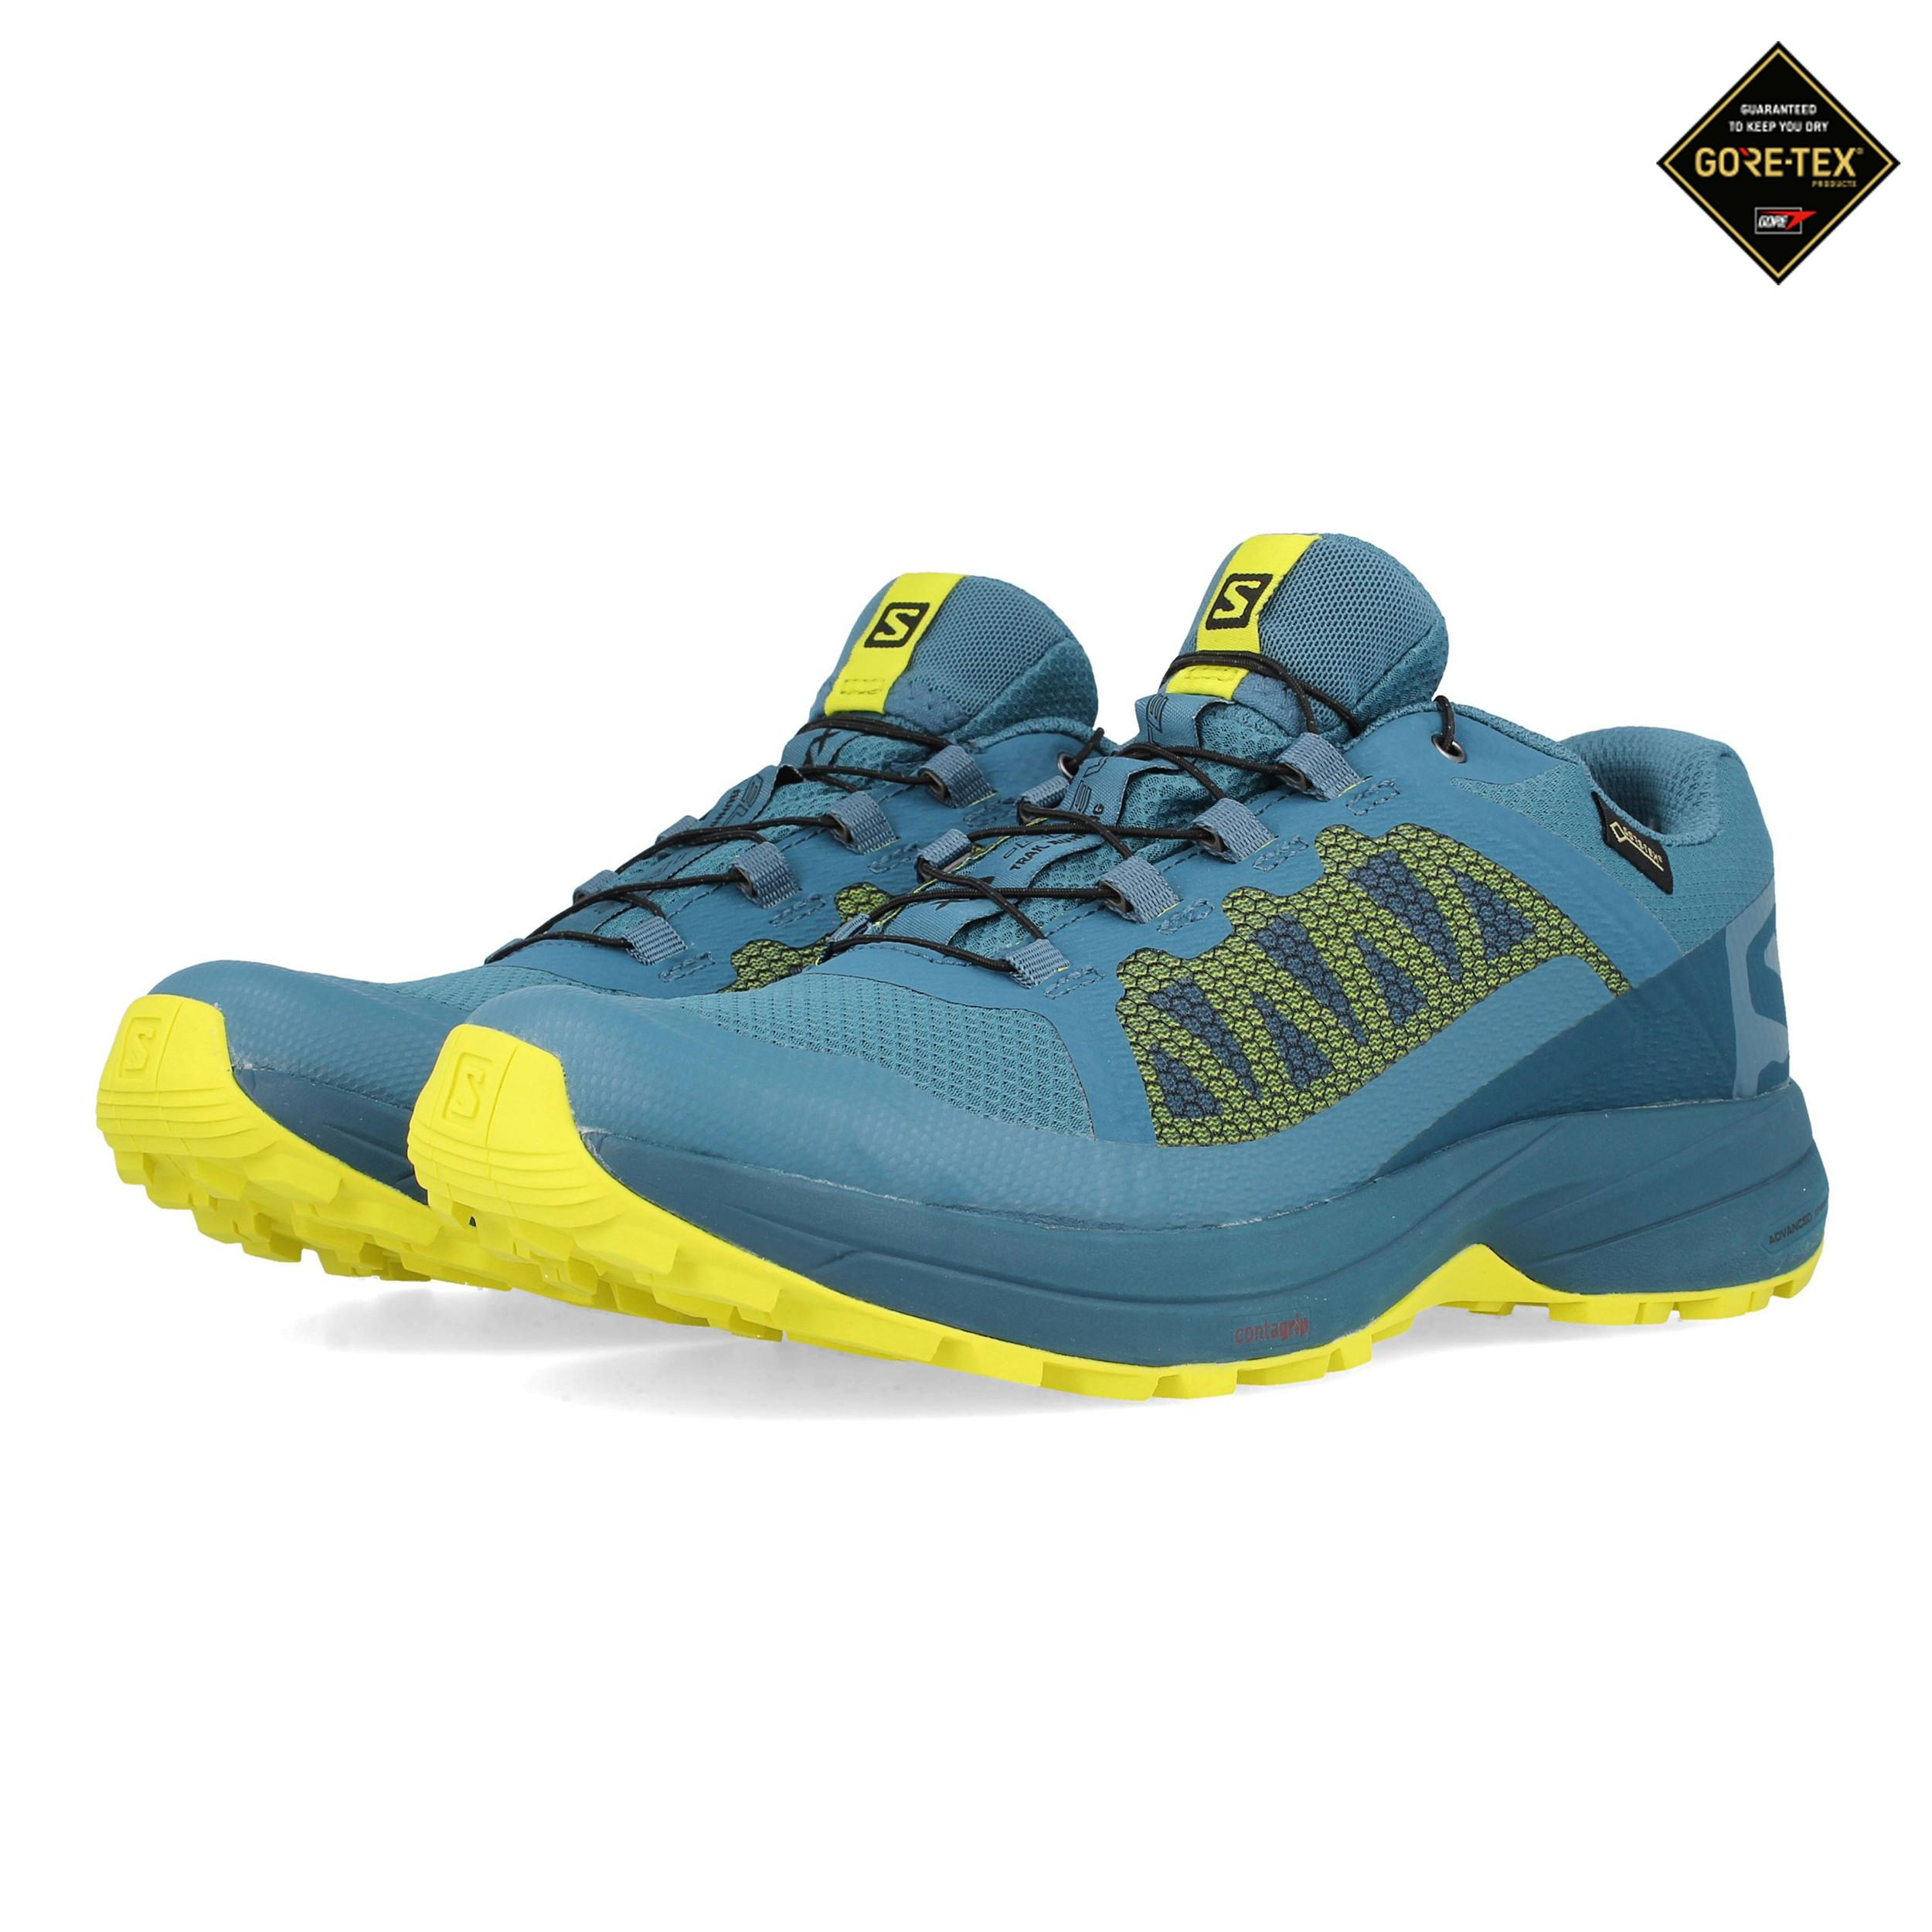 cfaafe5a Xa elevate gore-tex trail running shoes - ss19